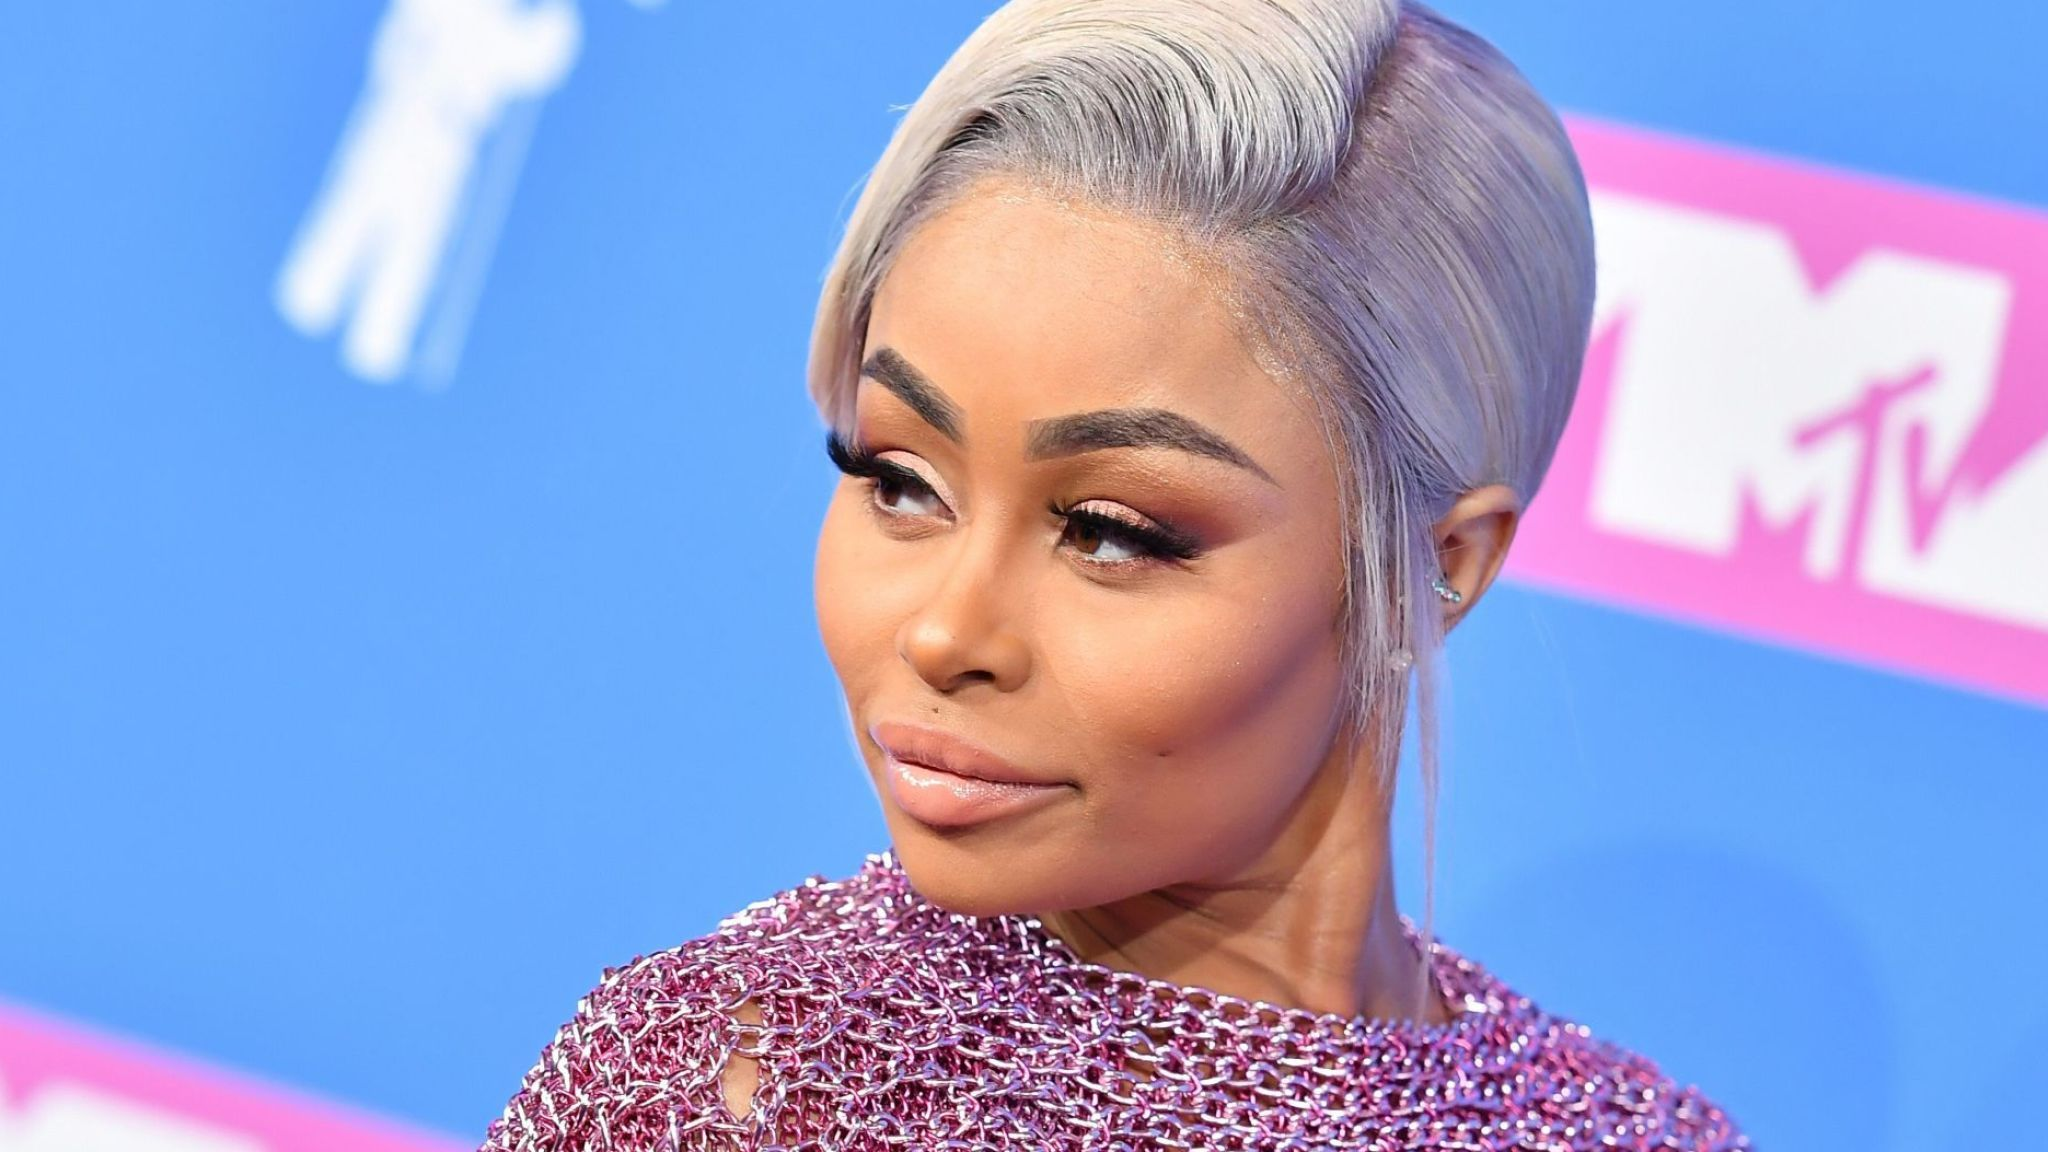 Blac Chyna Grants Fans' Wish And Brings Back 'Cooking With Chyna' - People Are Excited And Say They've Been Waiting For This Foe A Whole Year